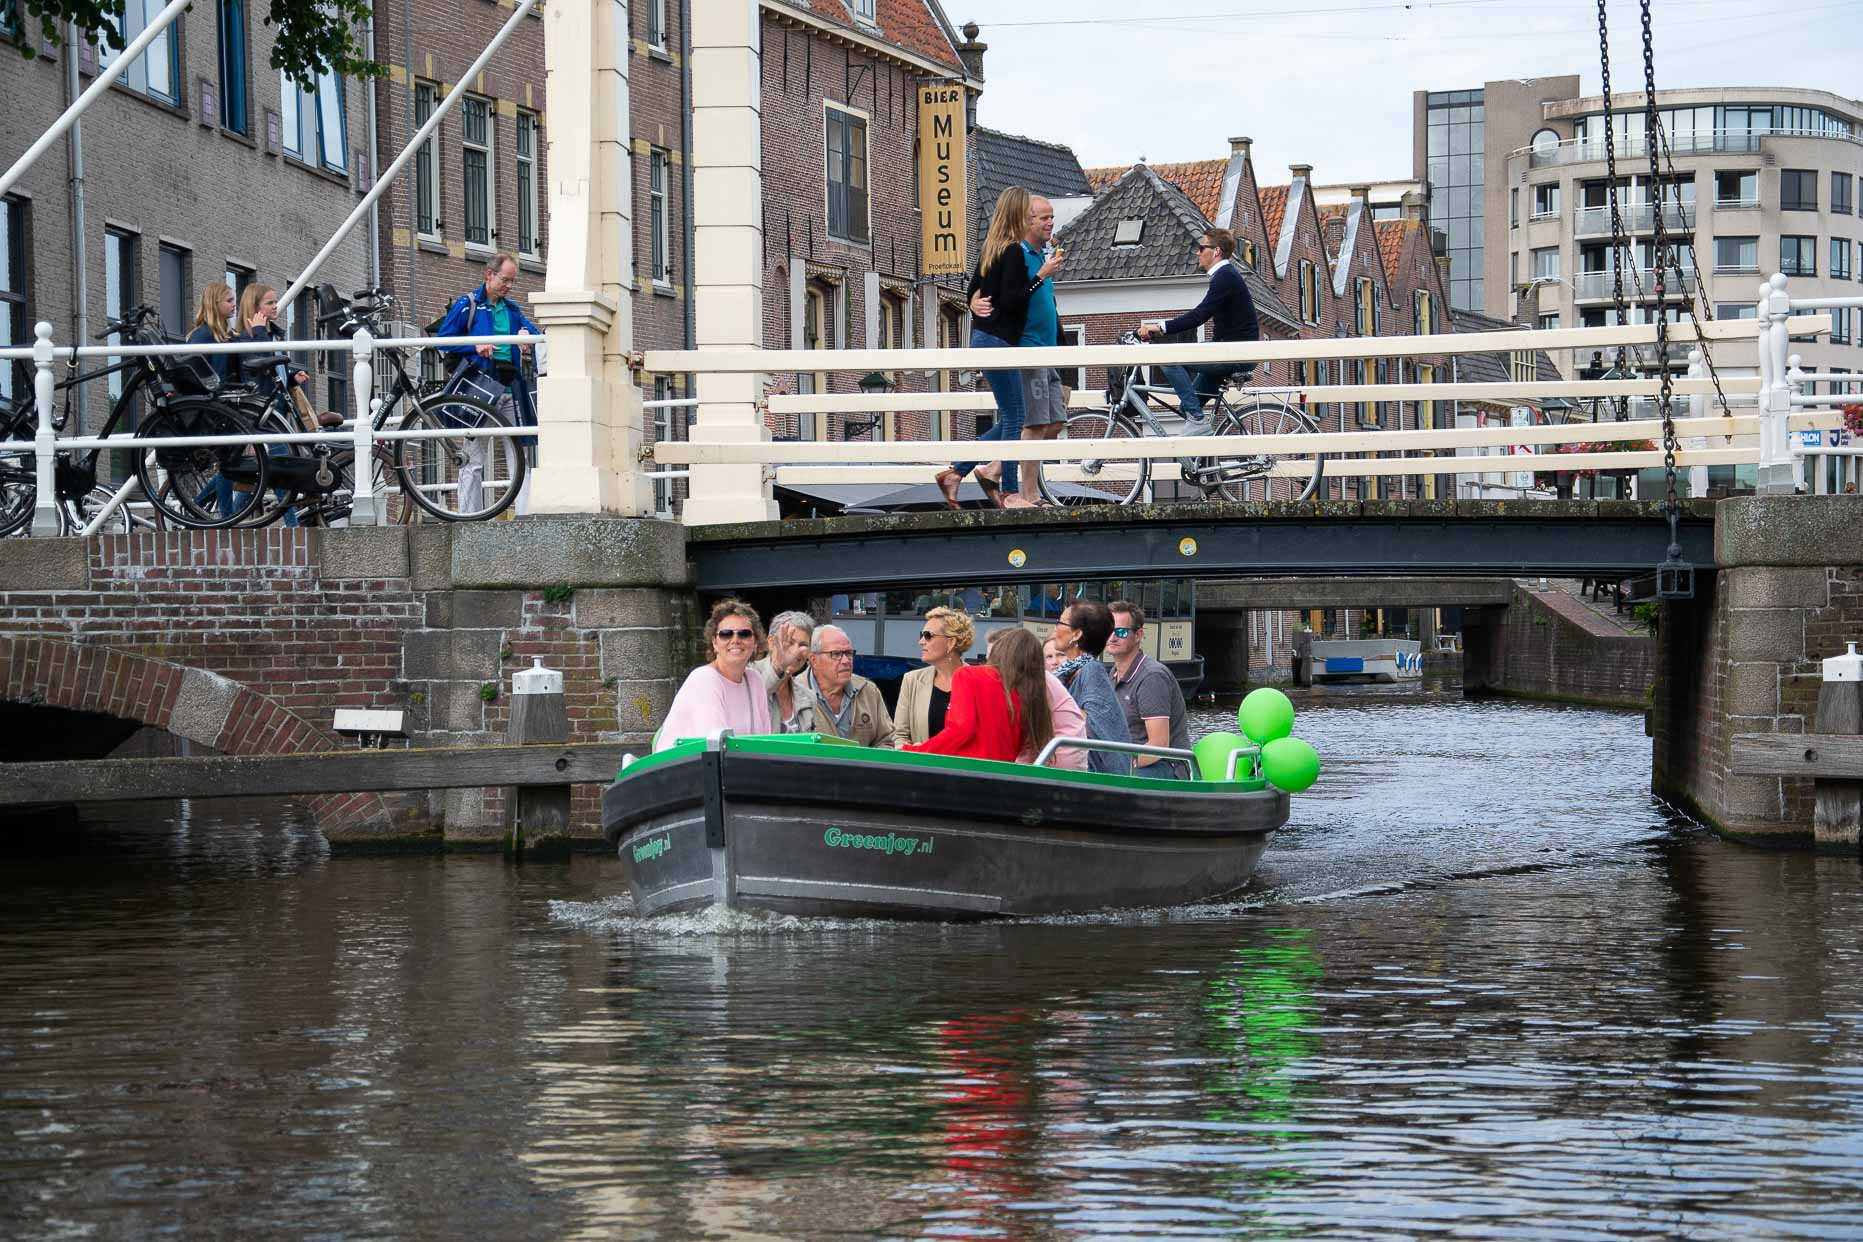 Enjoy the canals of Alkmaar